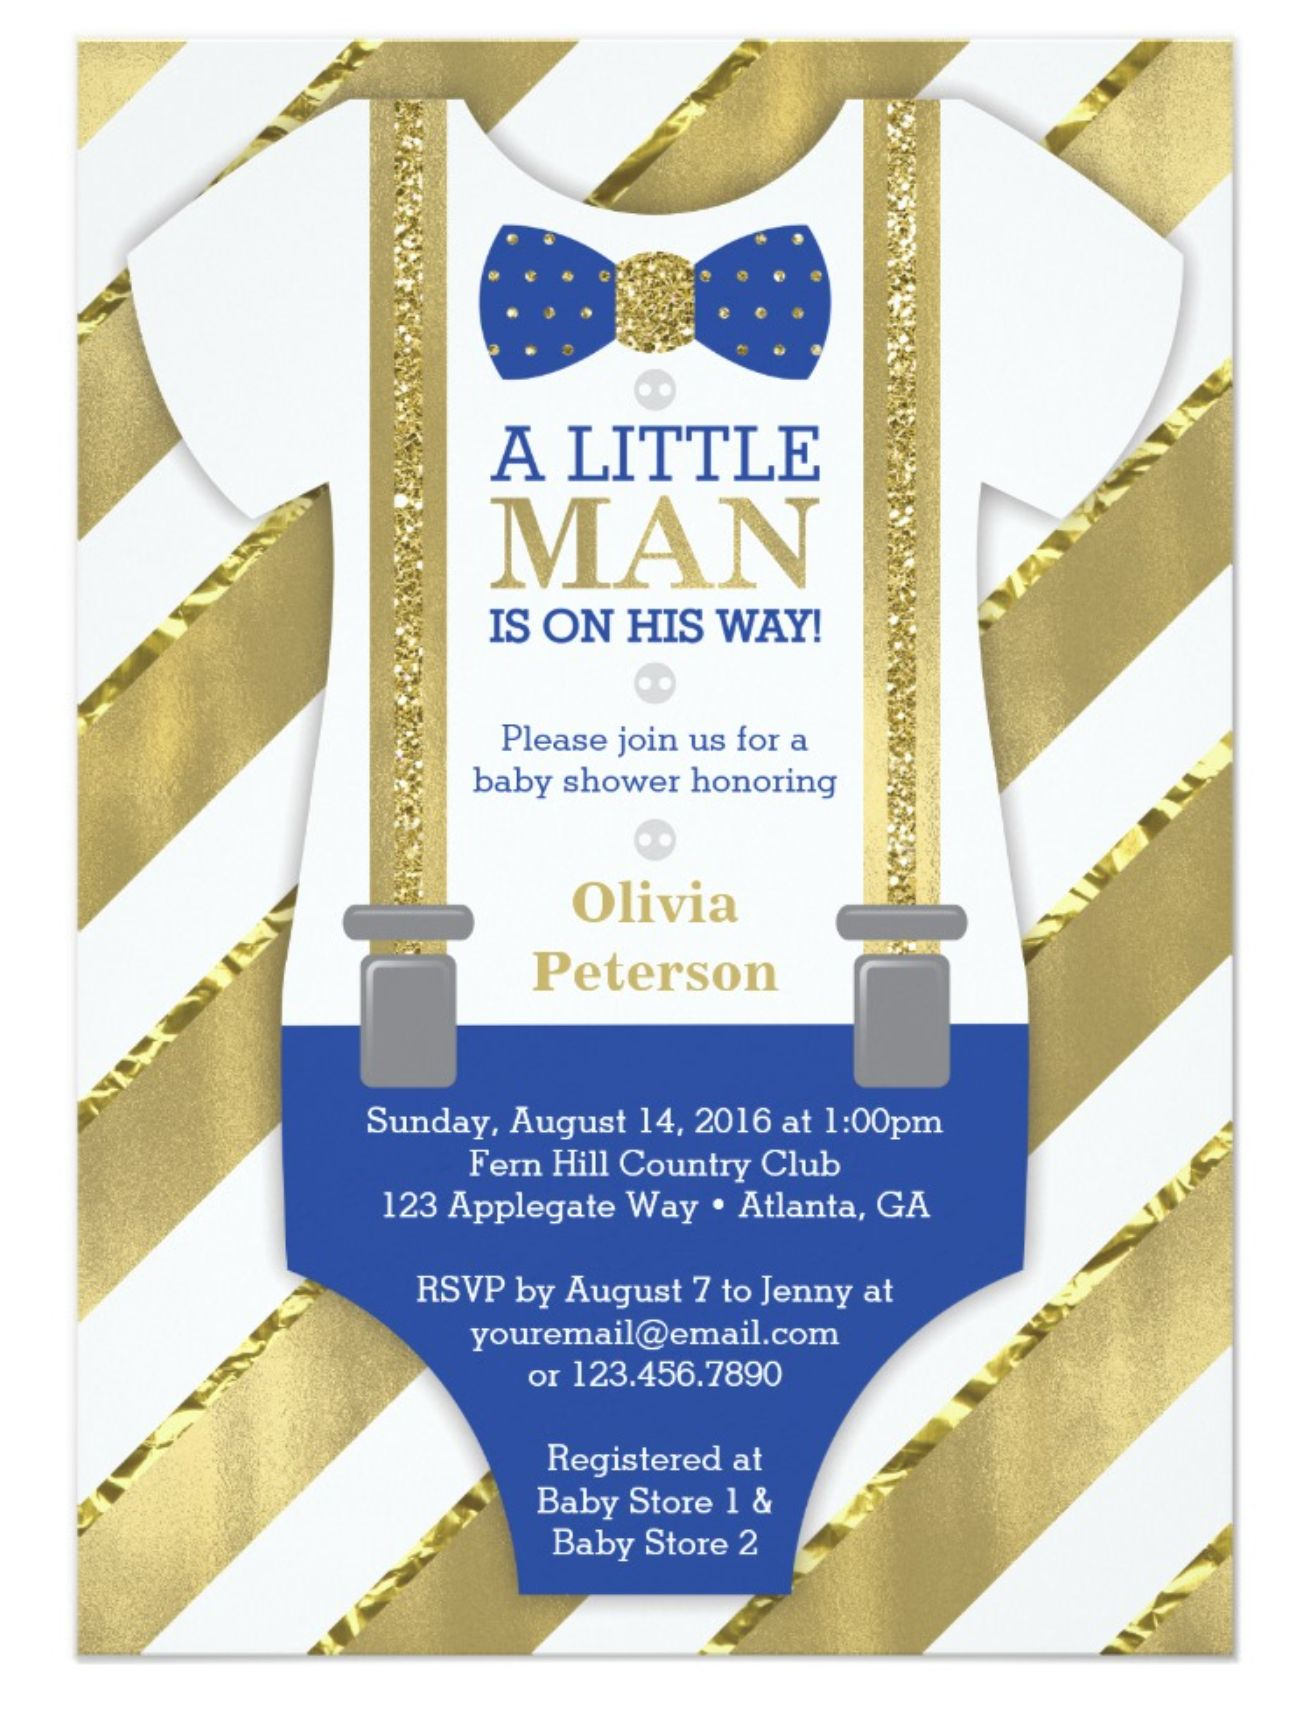 Little Man Baby Shower Invitation in Royal Blue and Gold | Little ...